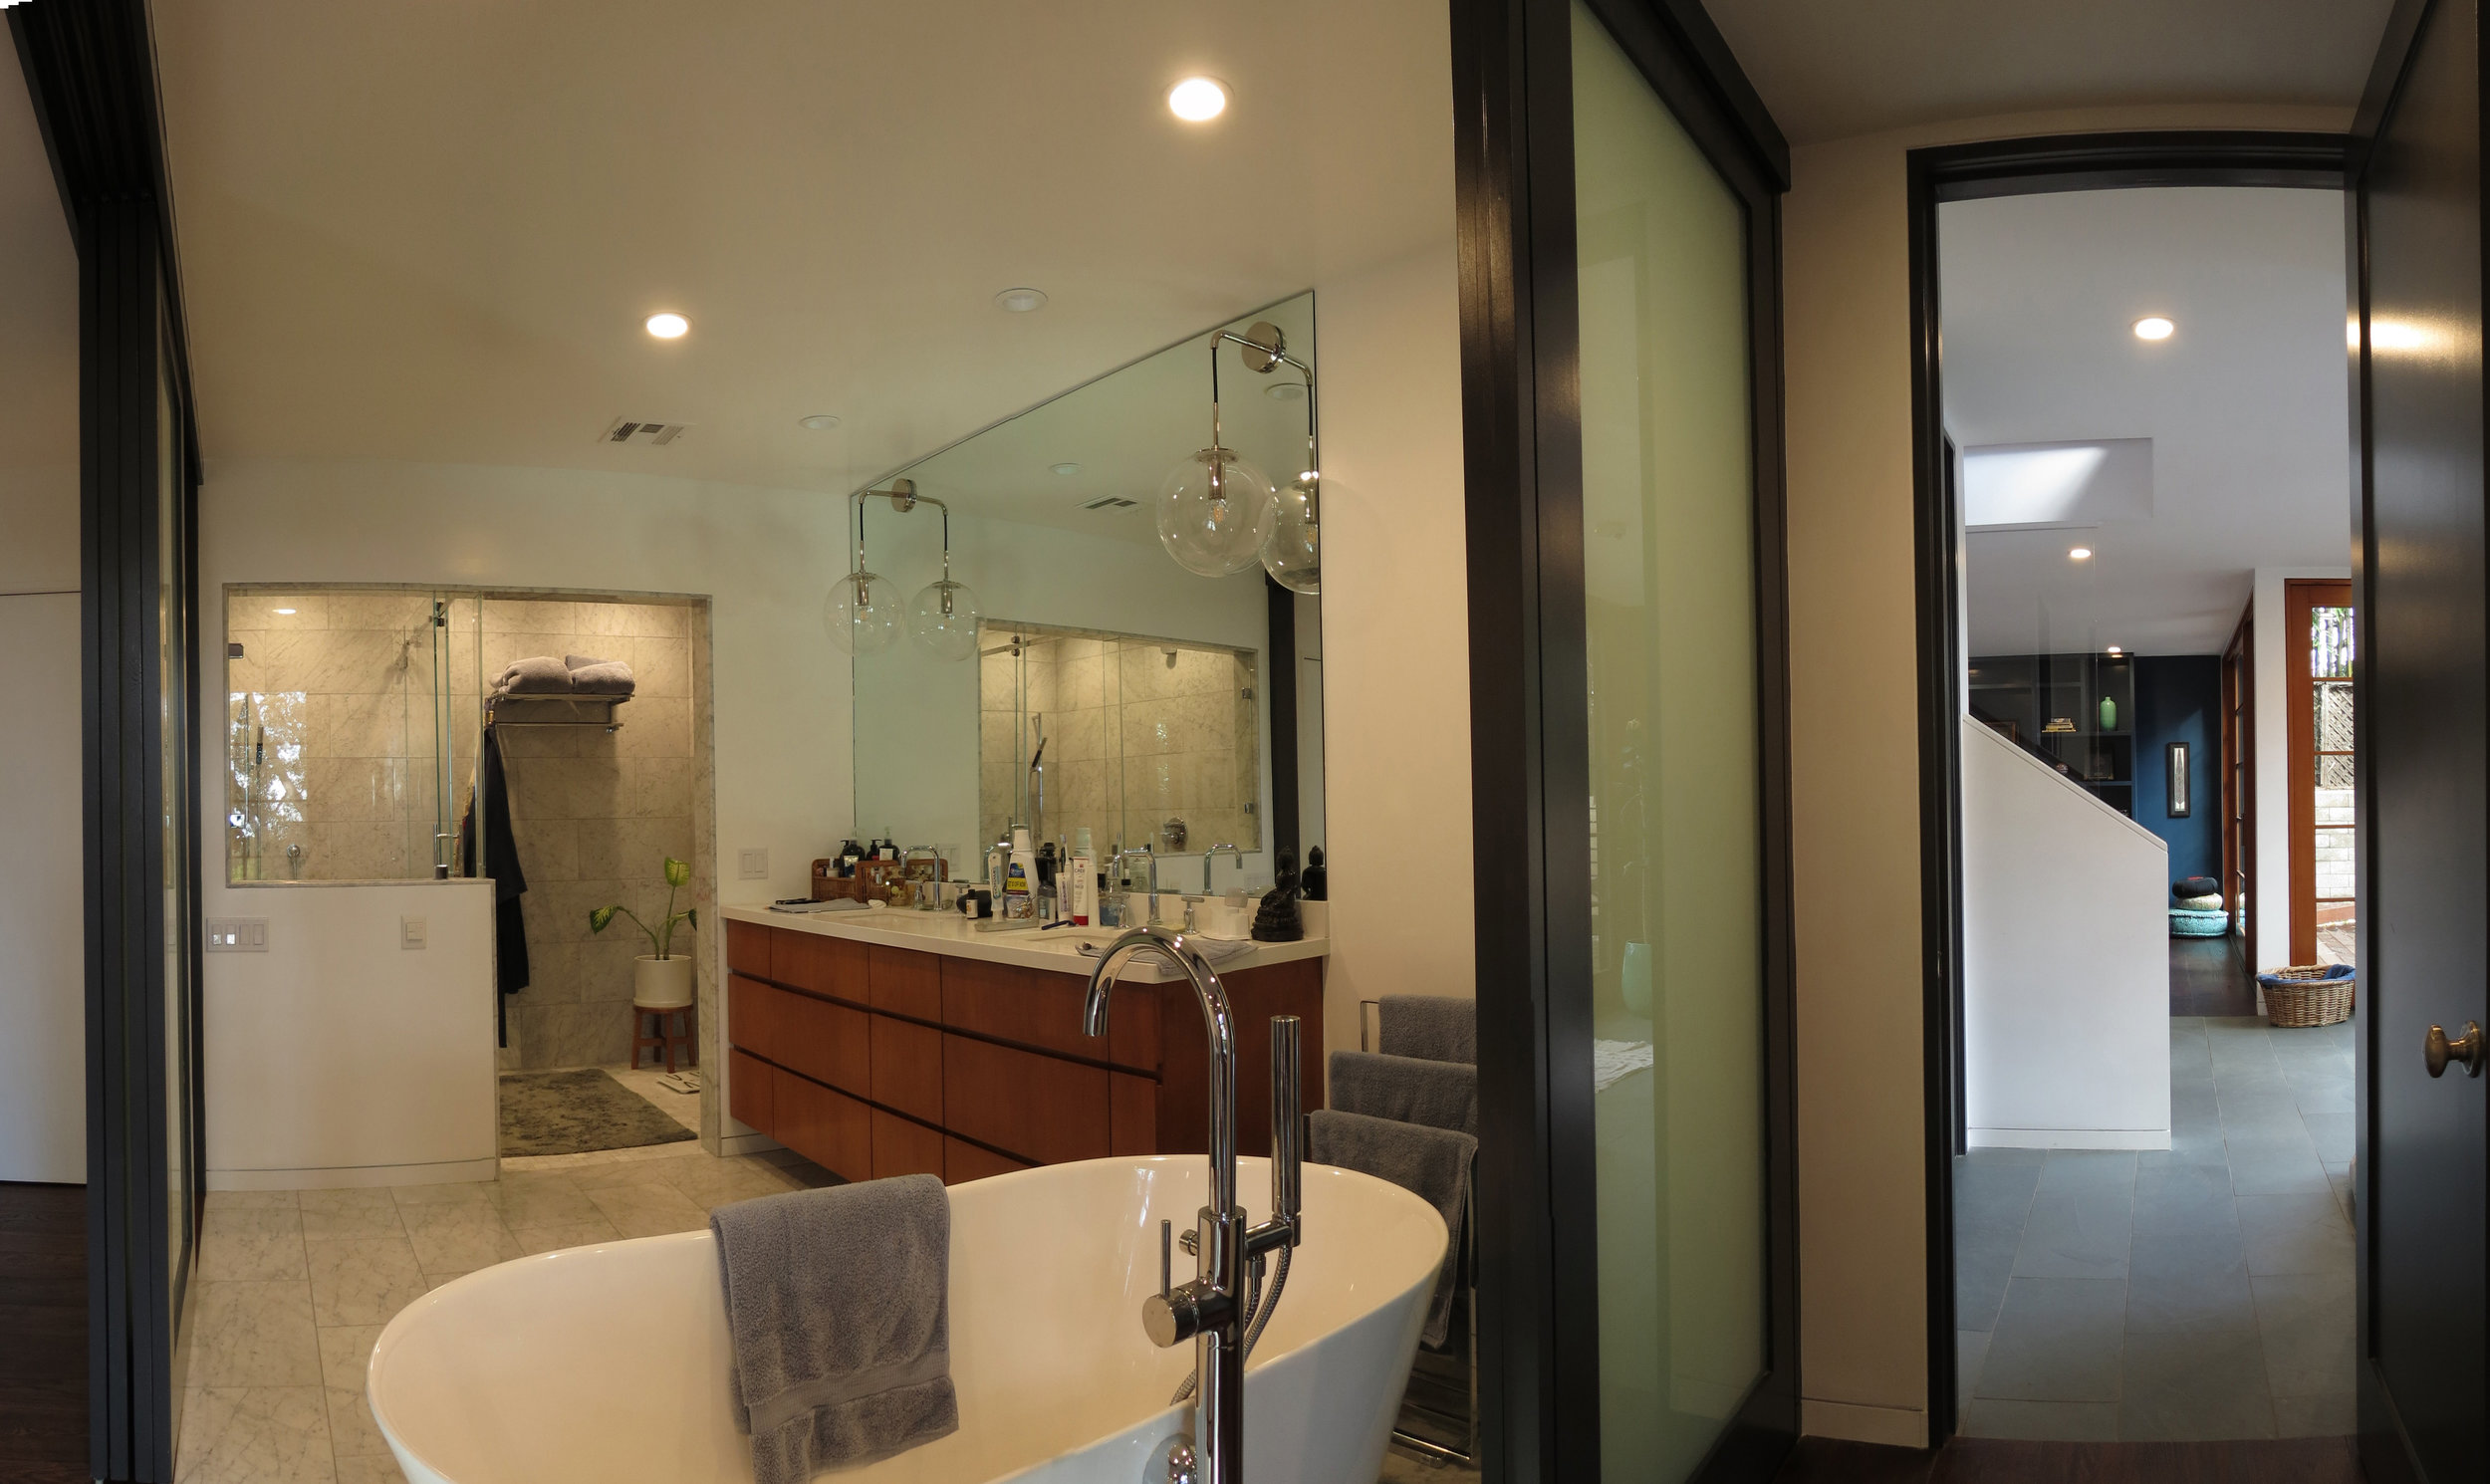 georgearchitecture_younghouse_masterbath09_3000.jpg